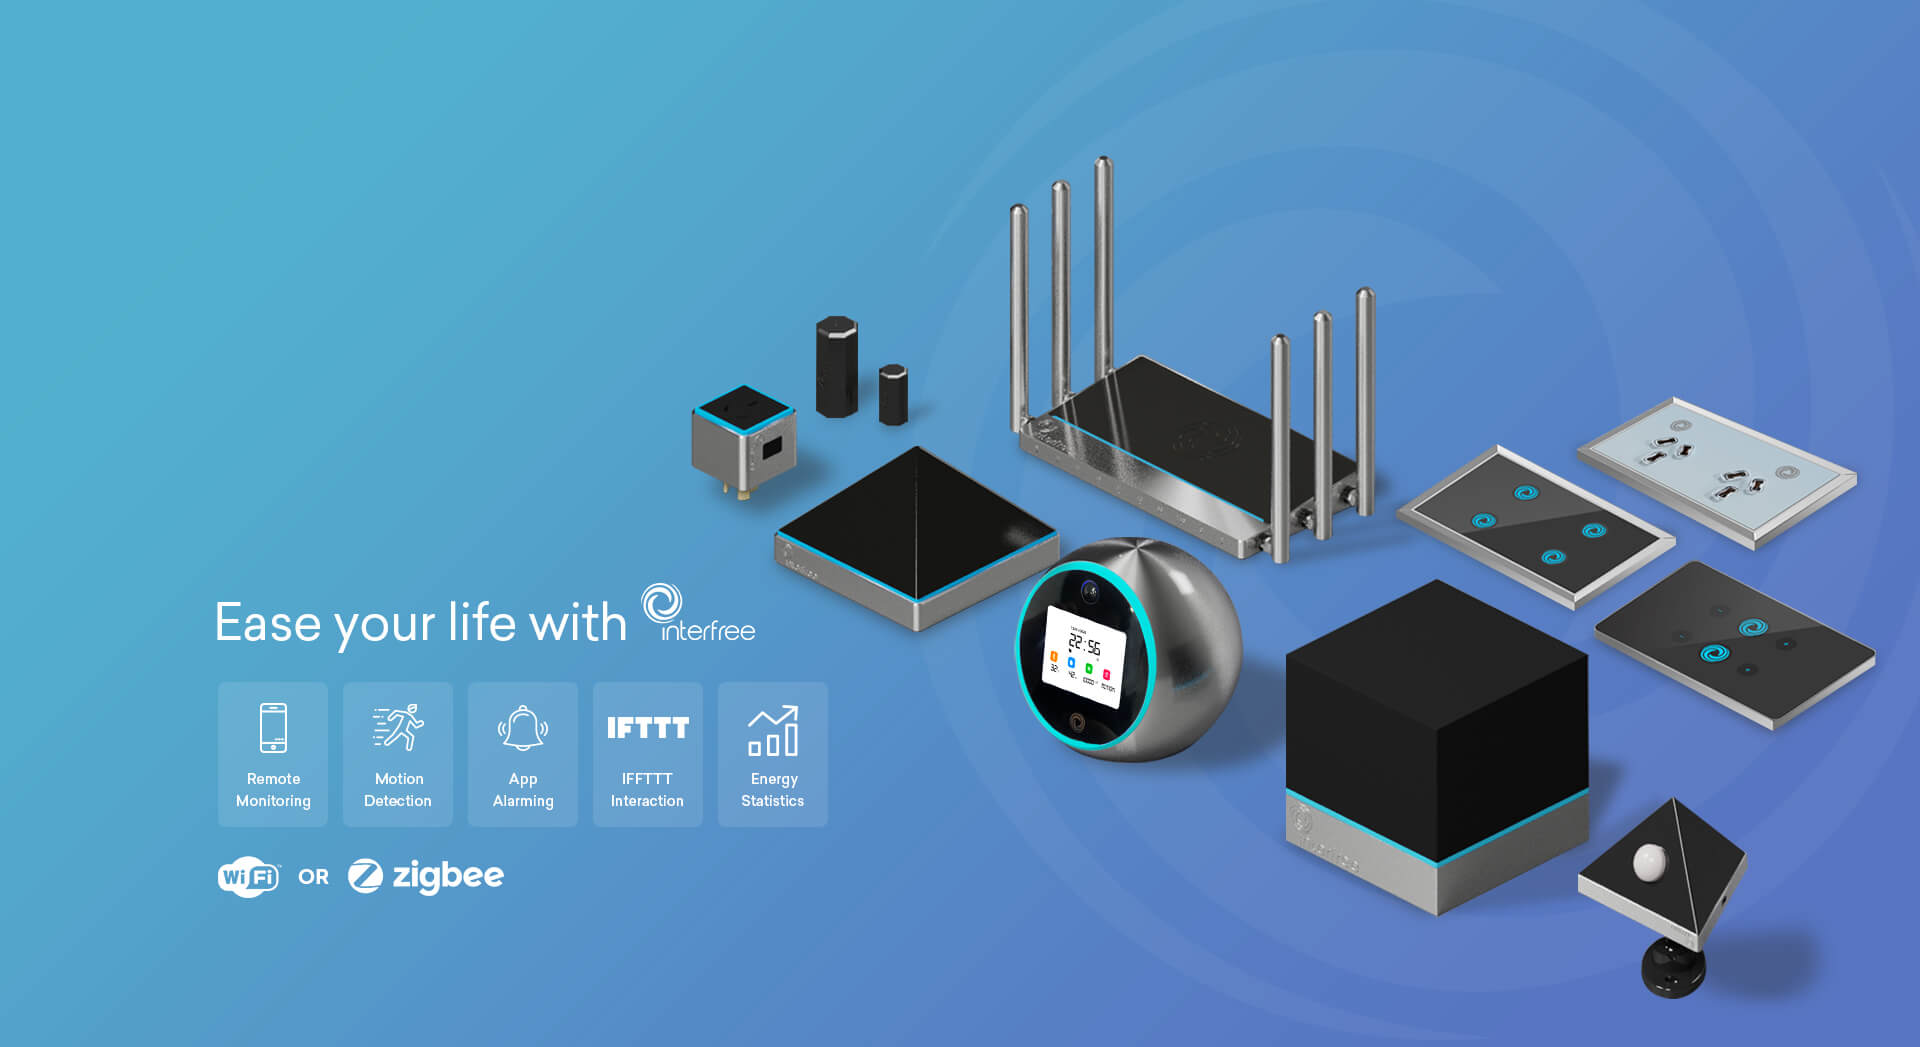 Interfree smart home devices